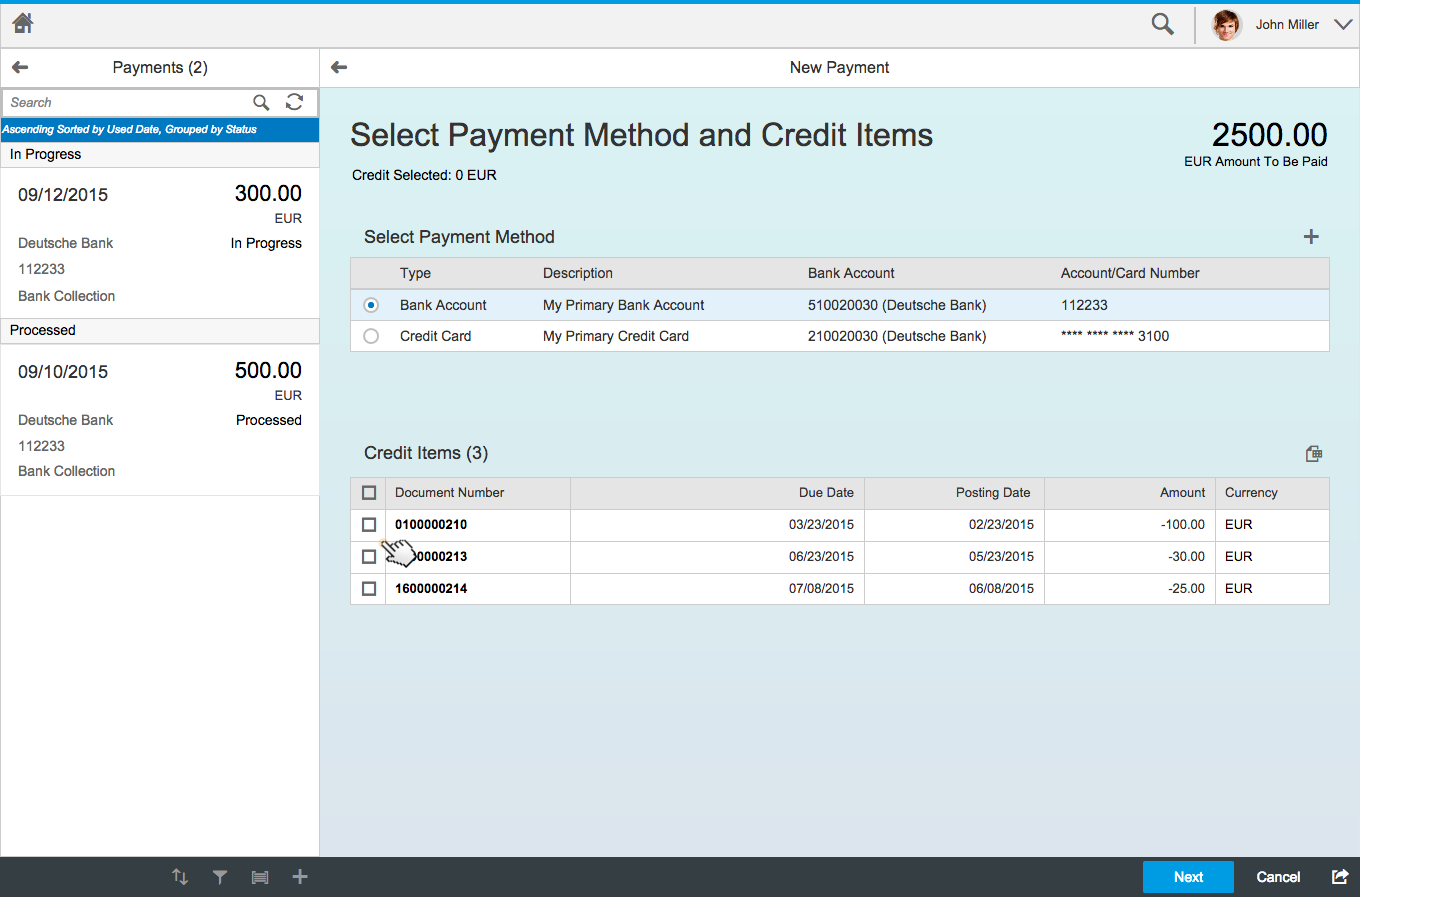 Pay my bills LAB PREVIEW Customers can pay their invoices using credit cards or bank collection (FI-AR) Online credit card authorization and settlement supported (planned) Partial payments, offset